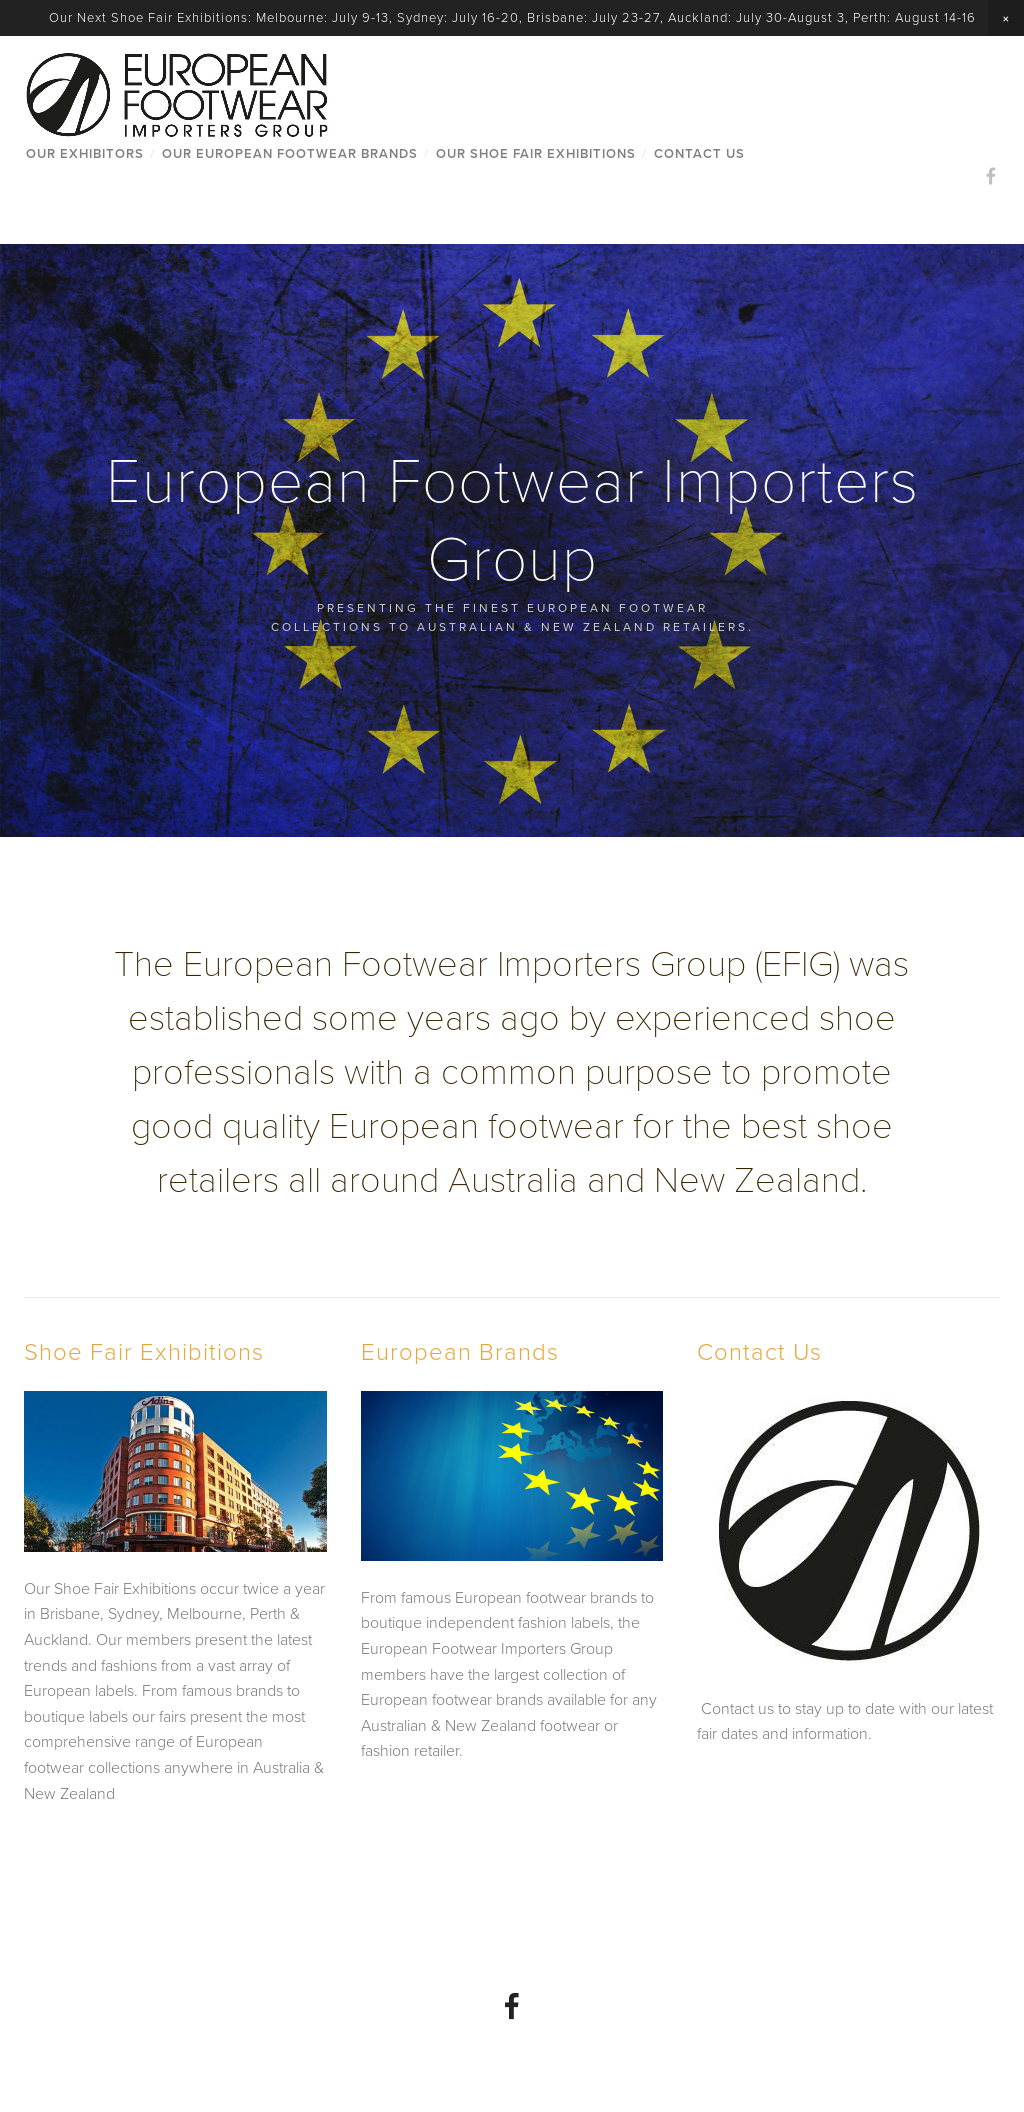 European Footwear Importers Group Competitors, Revenue and Employees